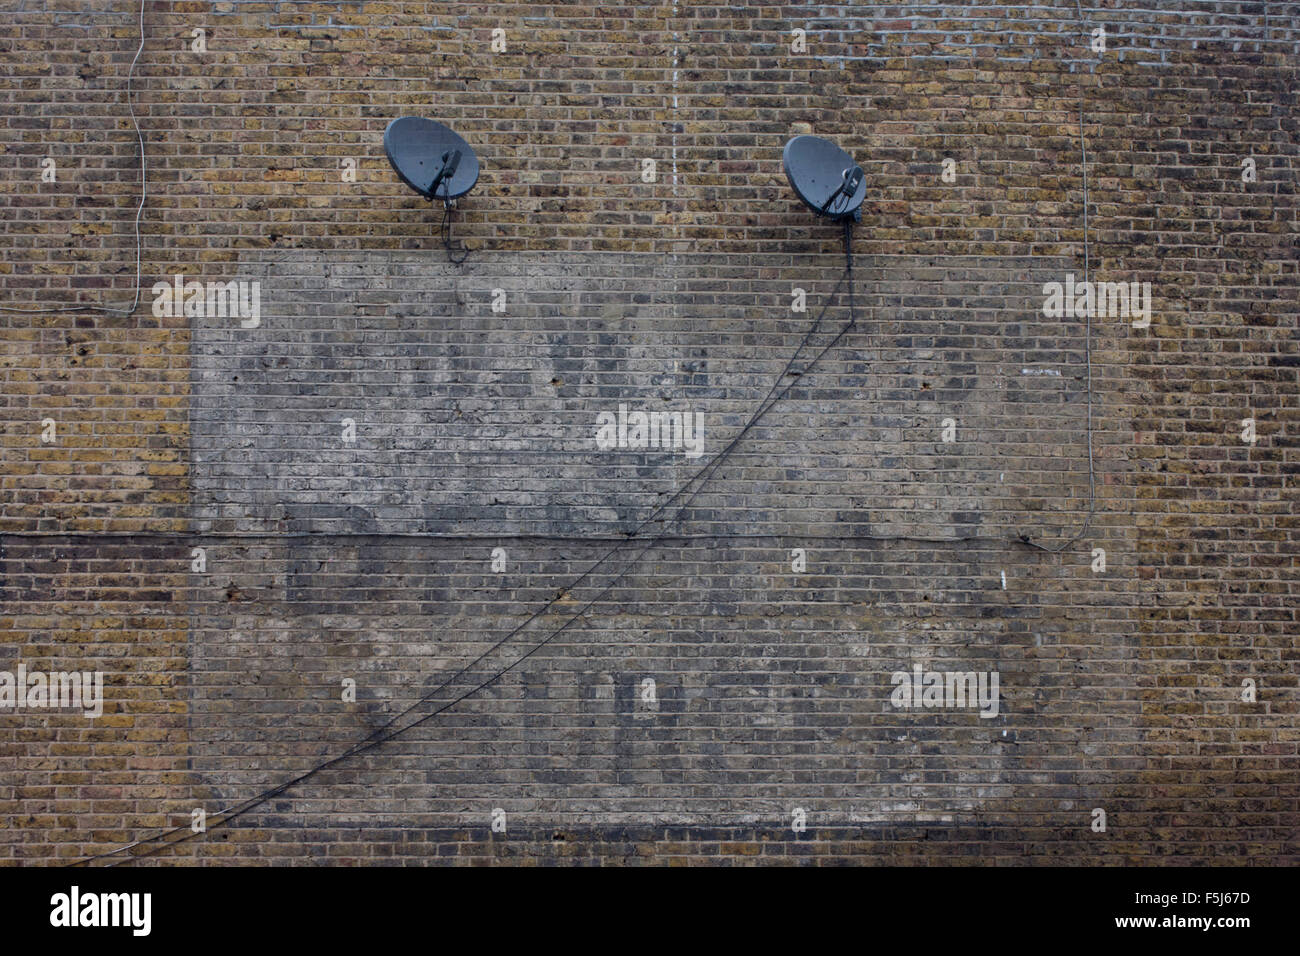 Old century advertising for a former dentist business fading on a brick wall in east Dulwich, south London. - Stock Image